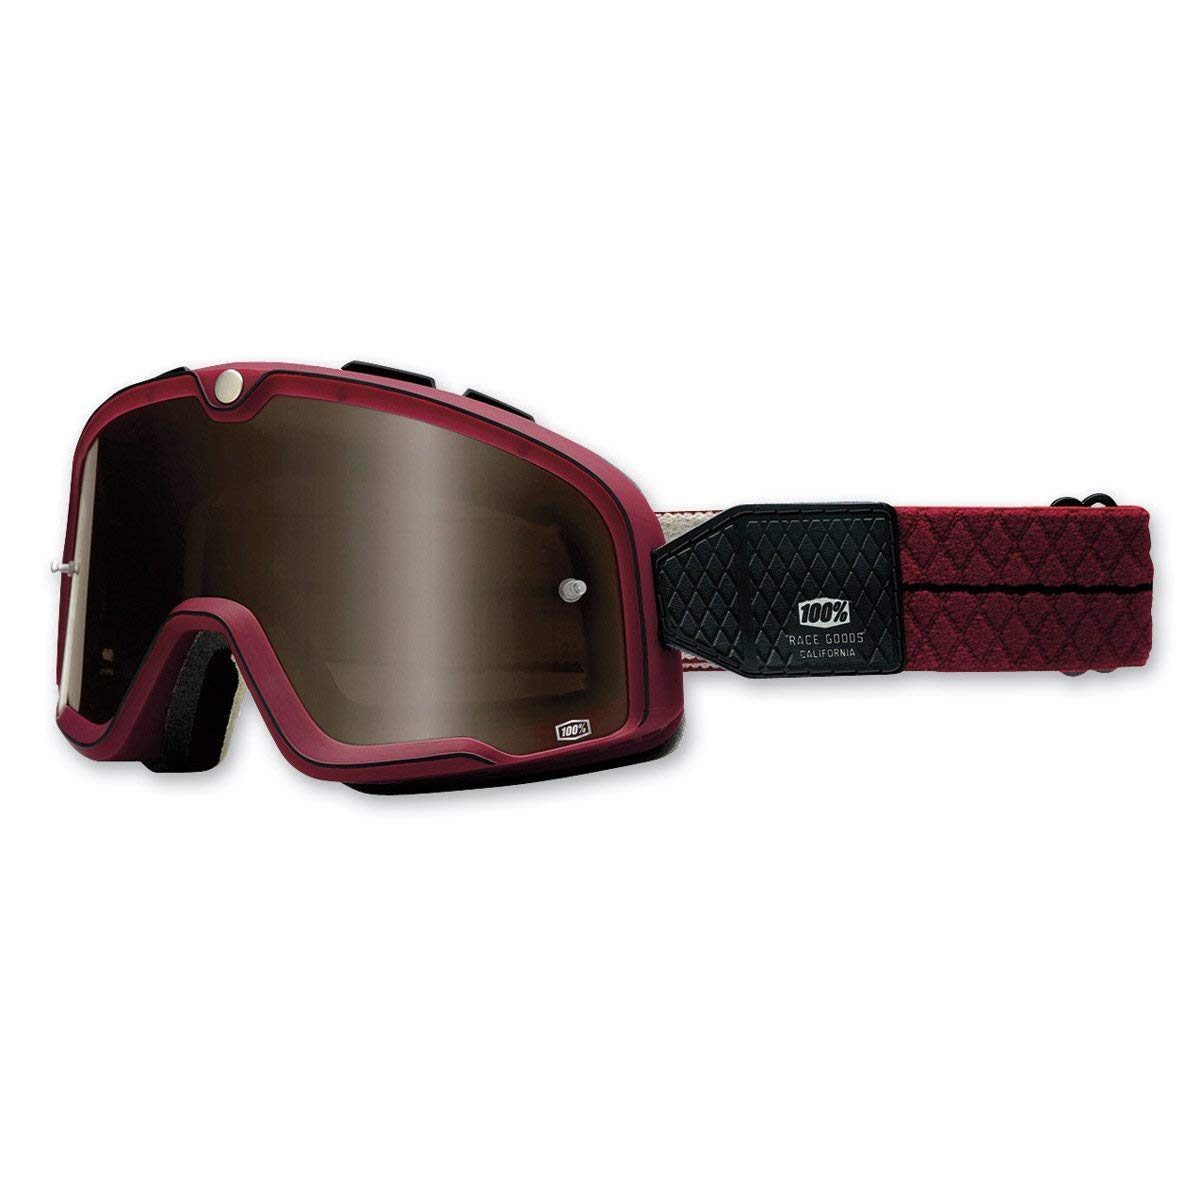 100% Barstow Classic Style Motorcycle Helmet Off Road Riding Goggle Burgundy Red